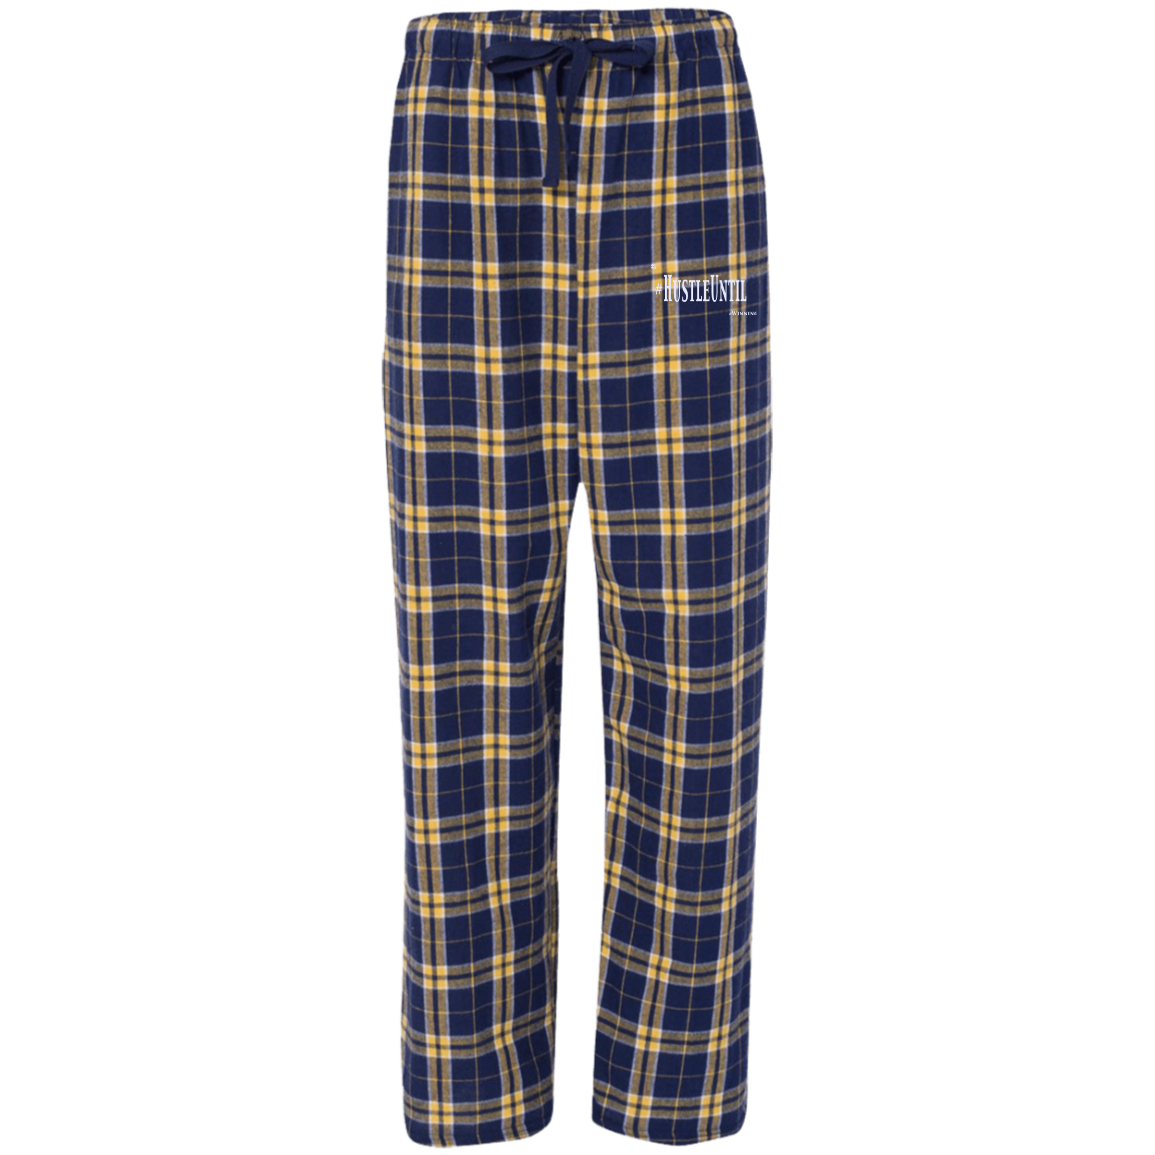 Hustle Until - Boxercraft Unisex Flannel Pants